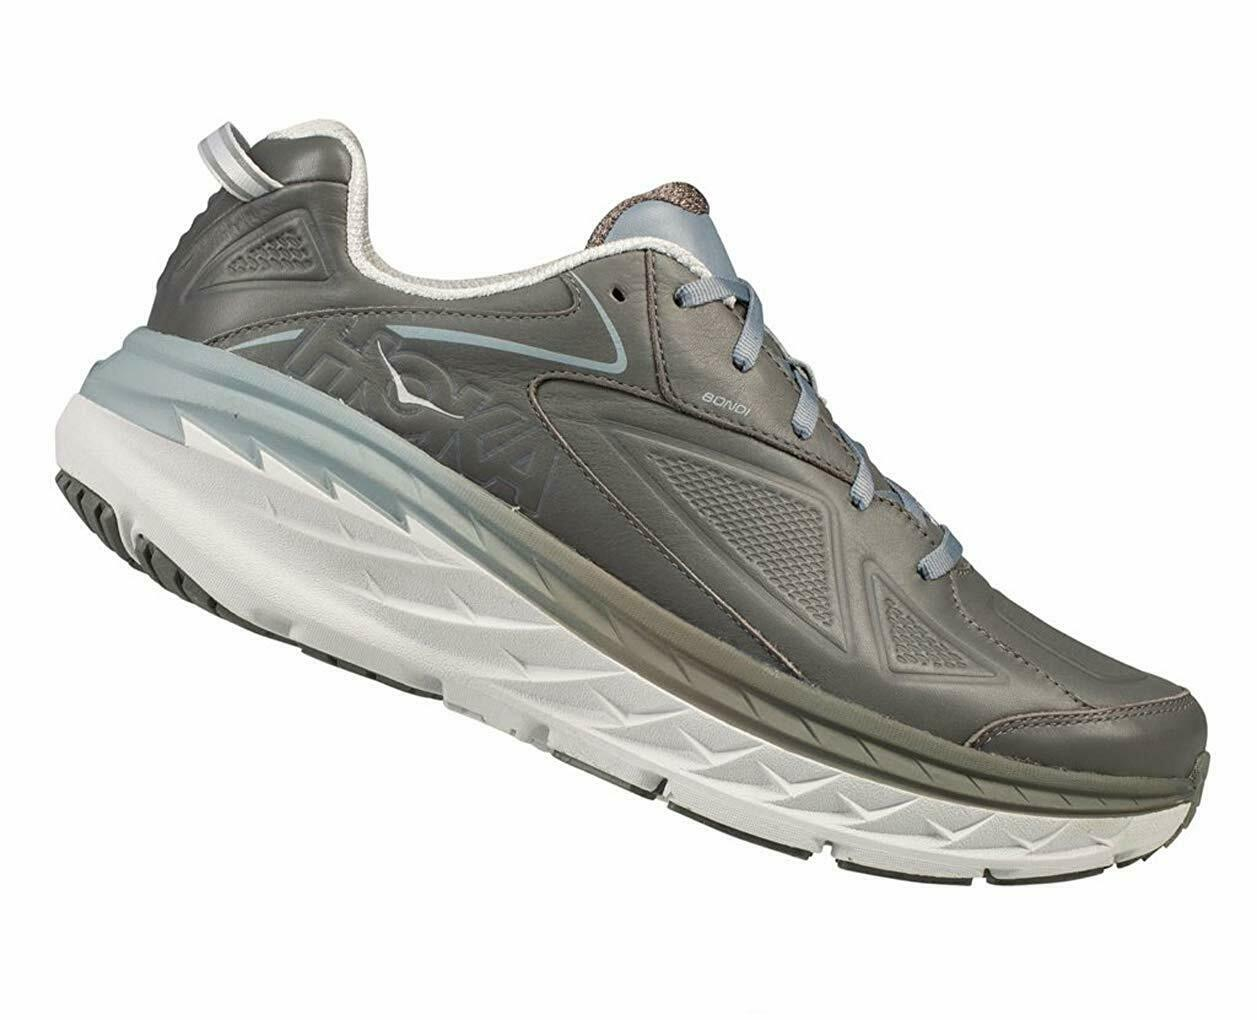 Hoka One One Men'S Bondi Ltr Wide Charcoal